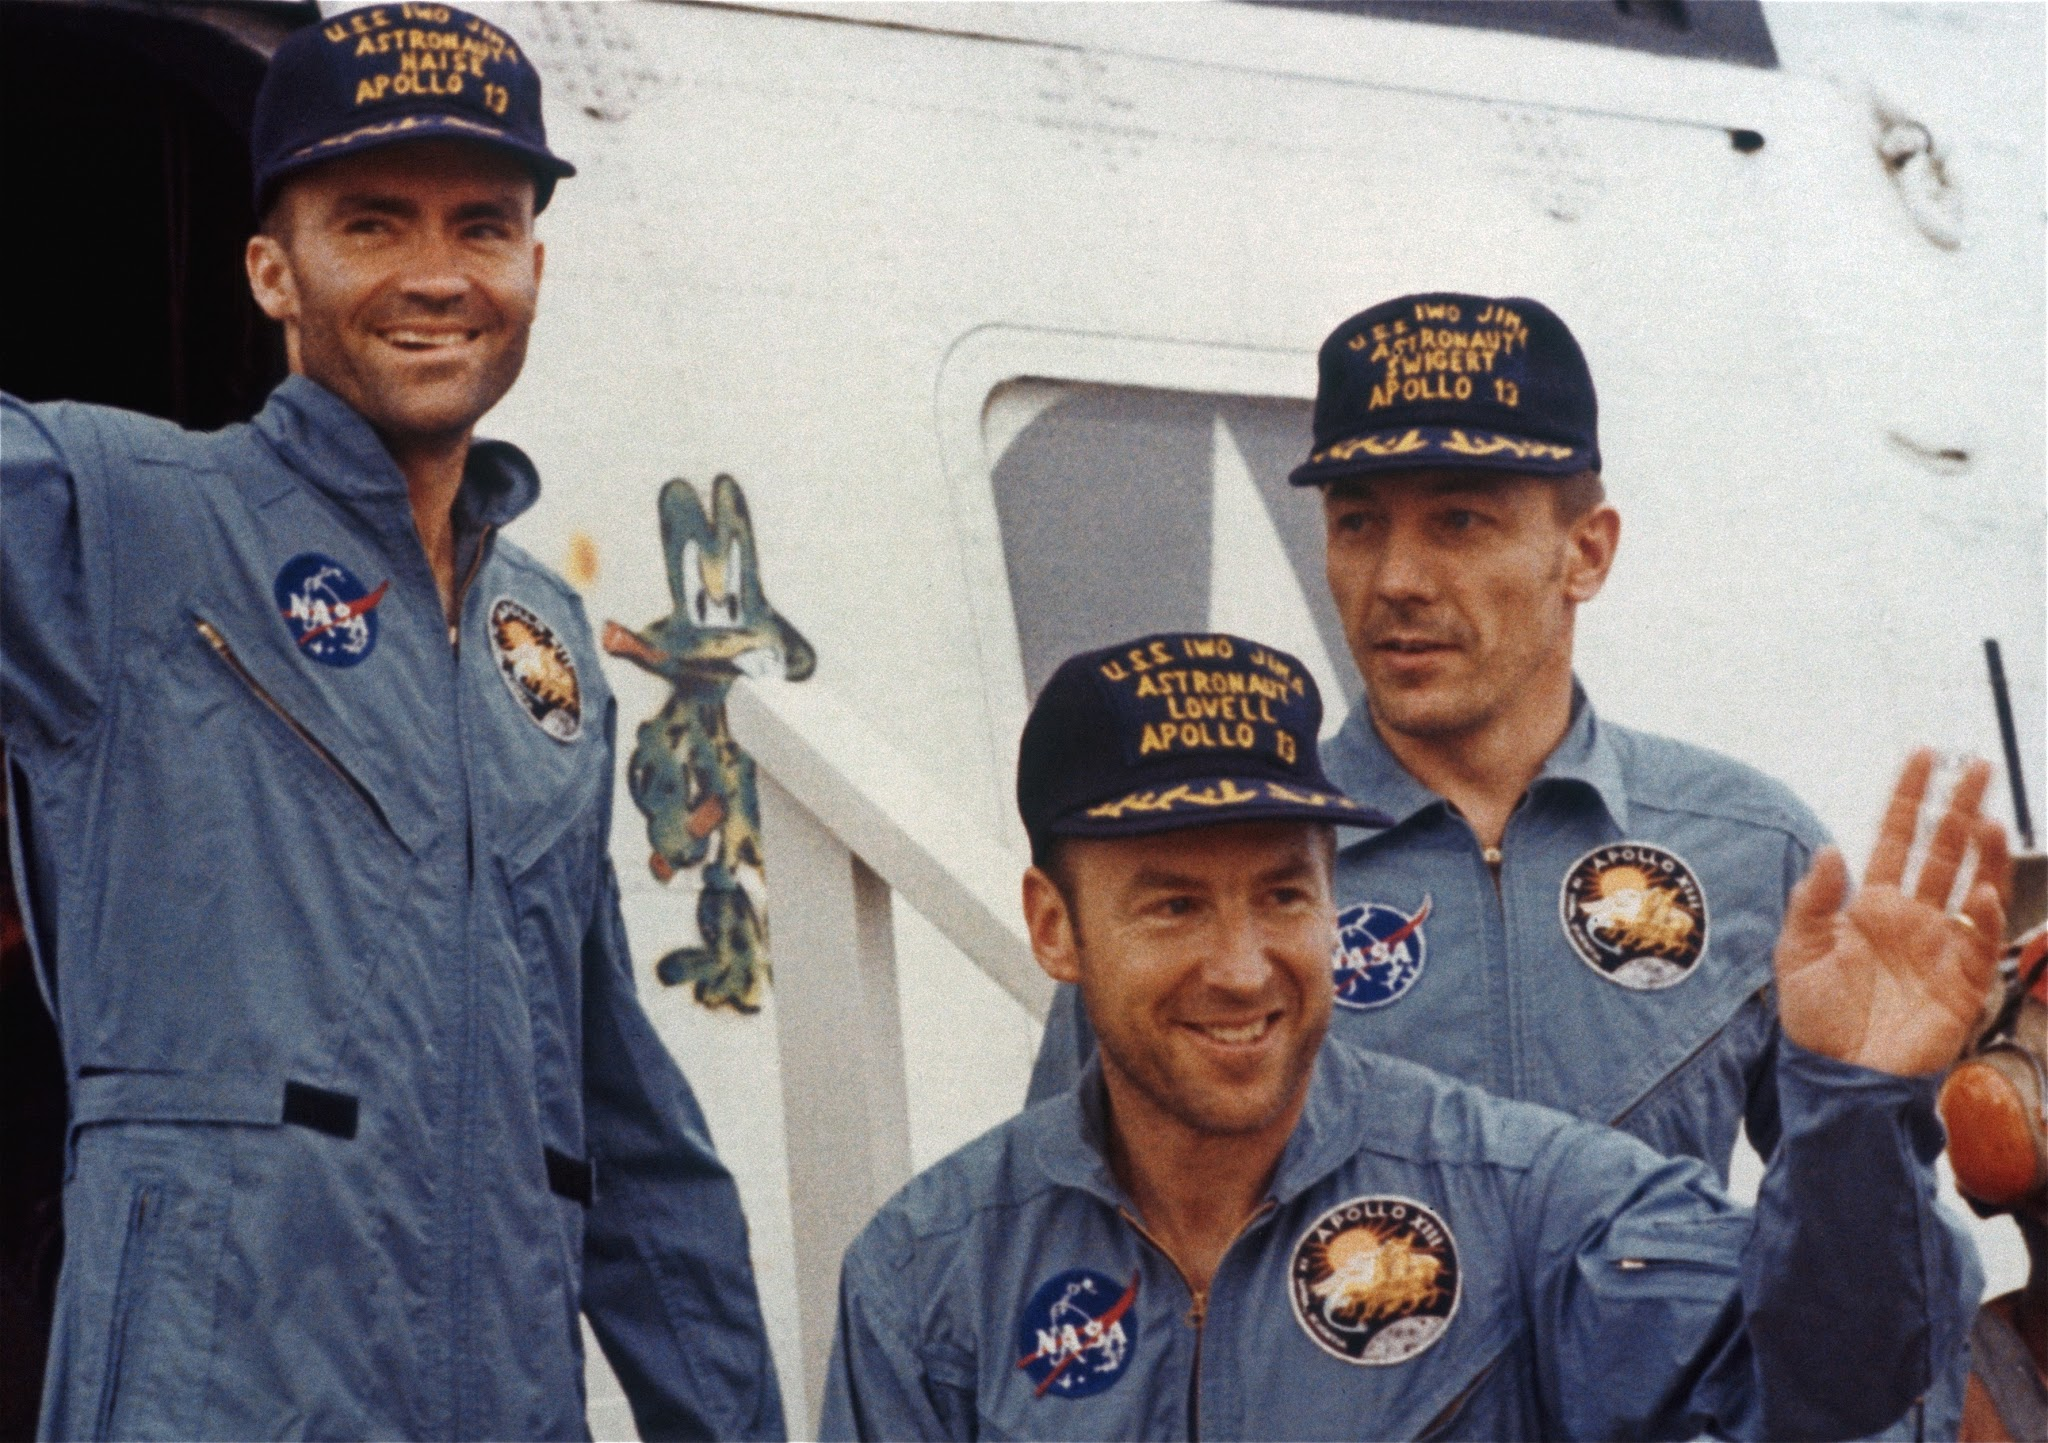 The heroic crew of Apollo 13